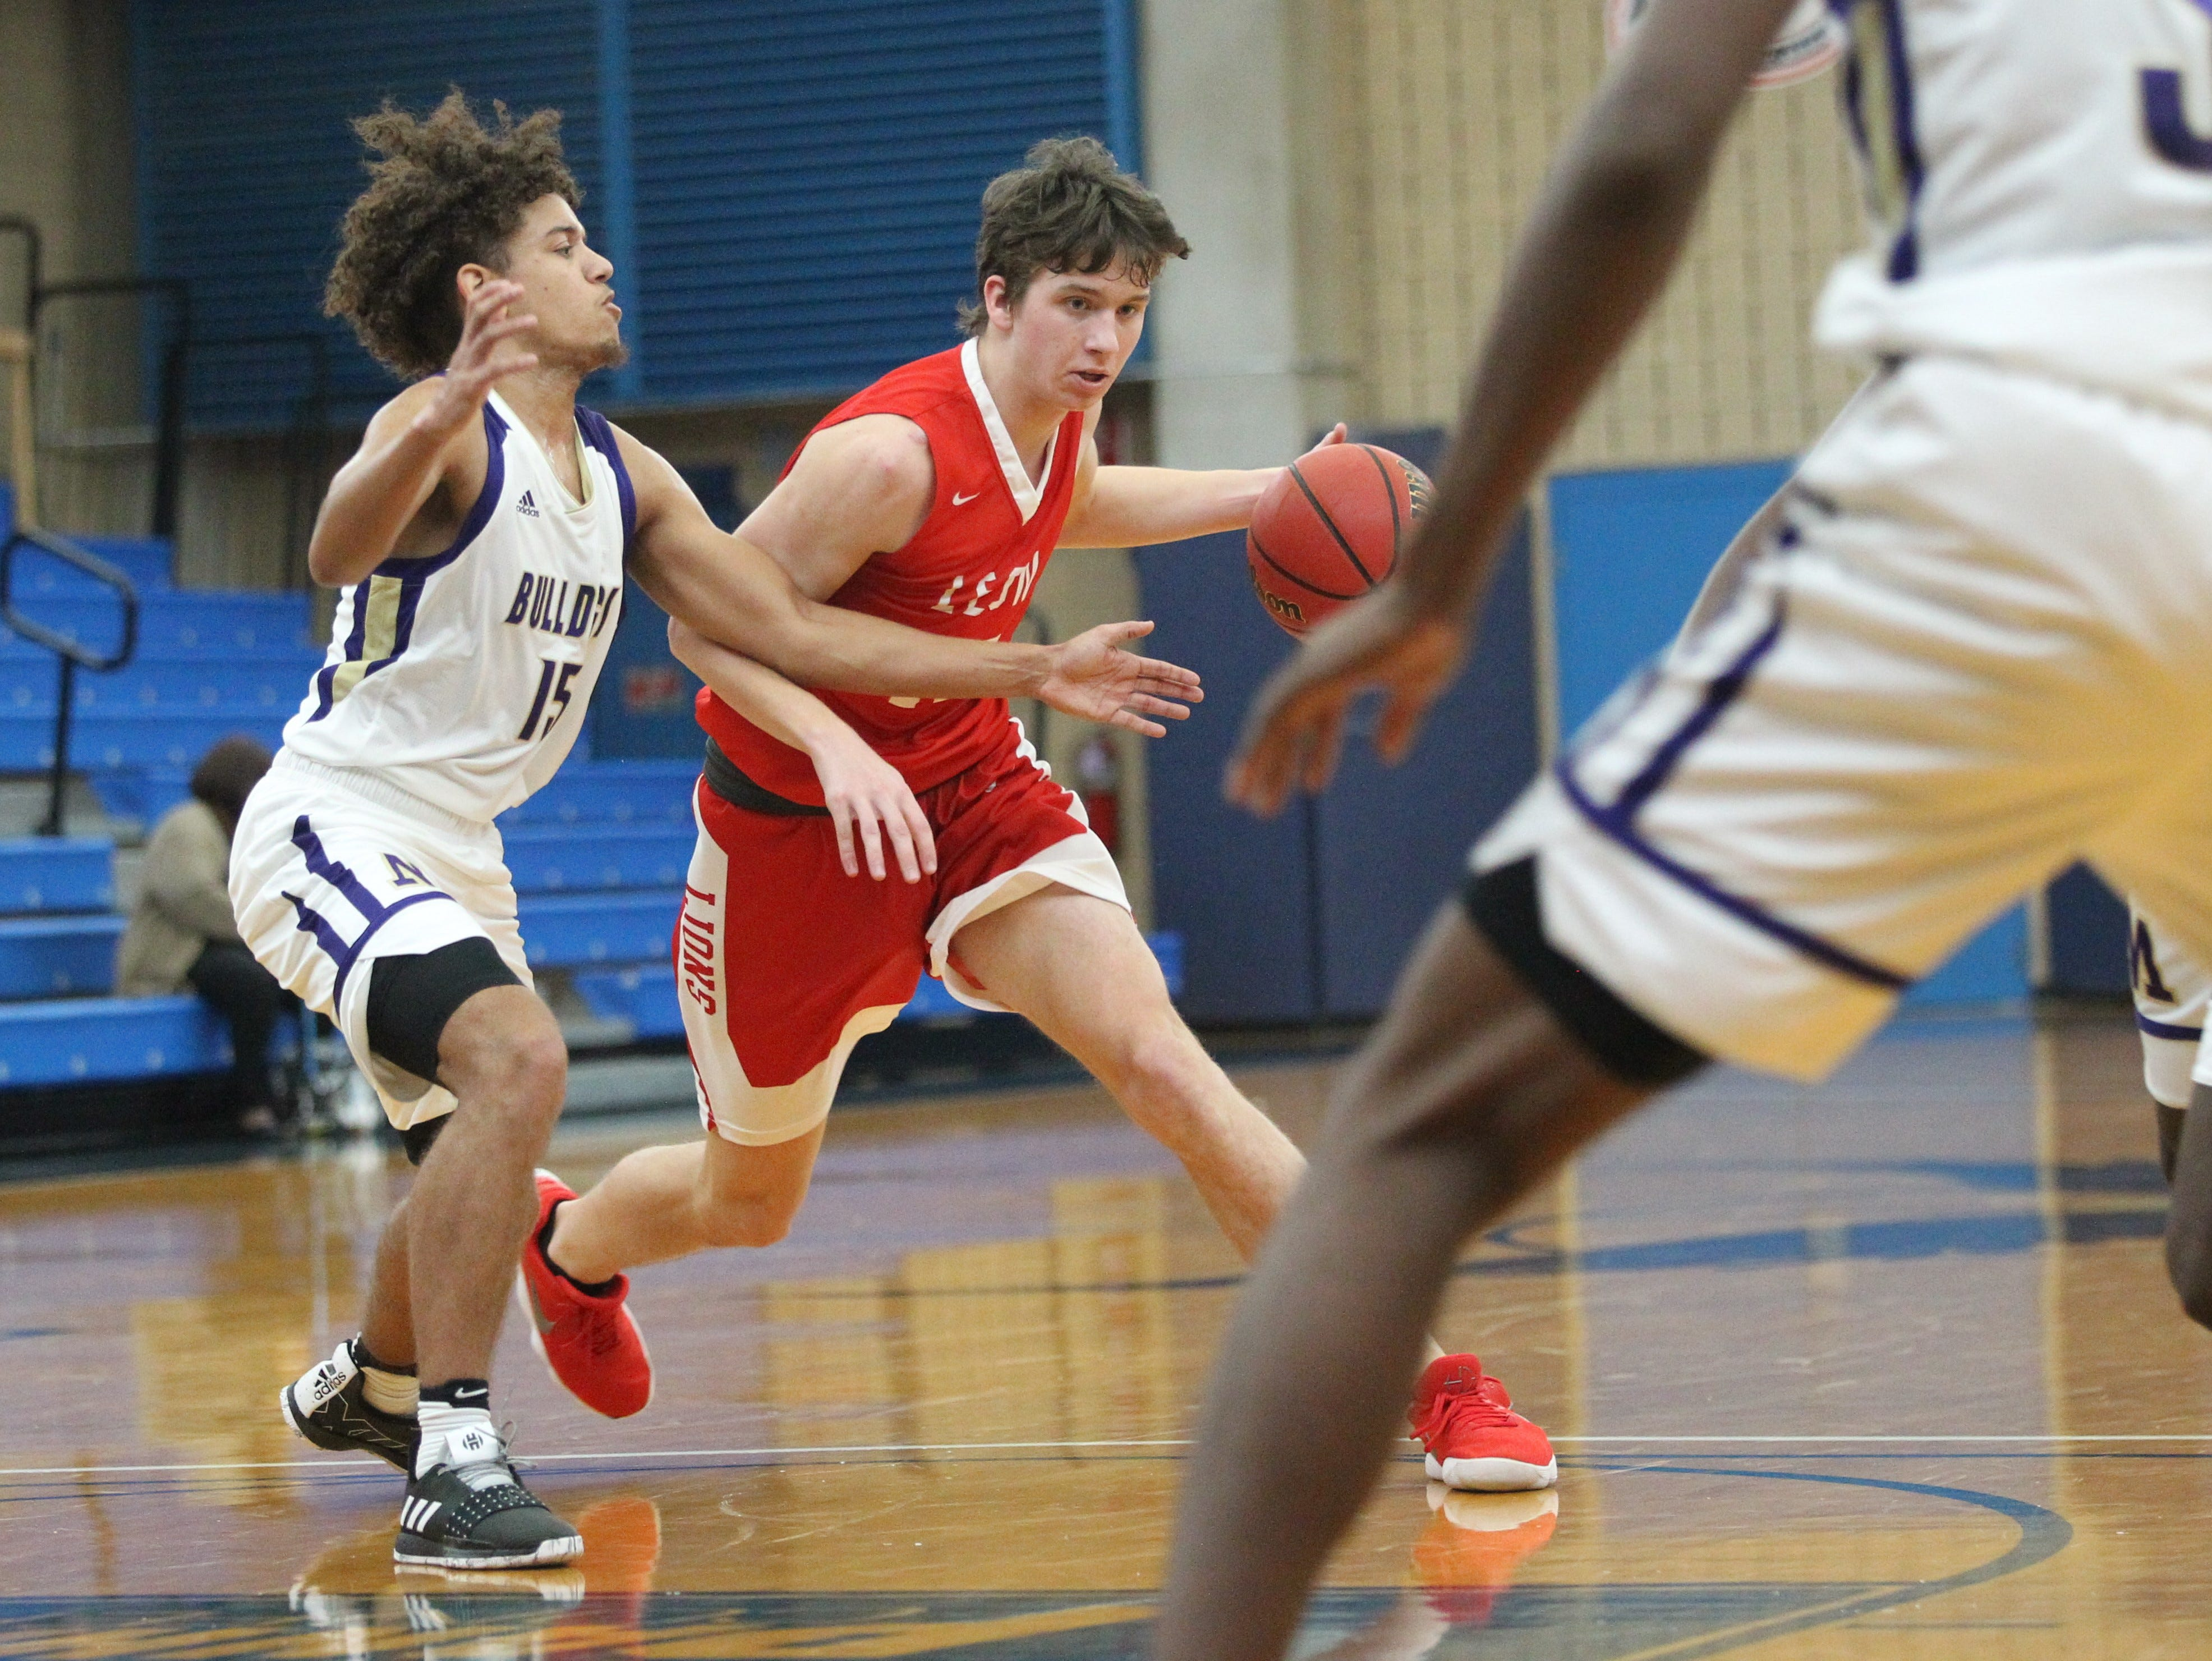 Leon plays Marianna in the 2018 Capital City Holiday Classic at TCC.